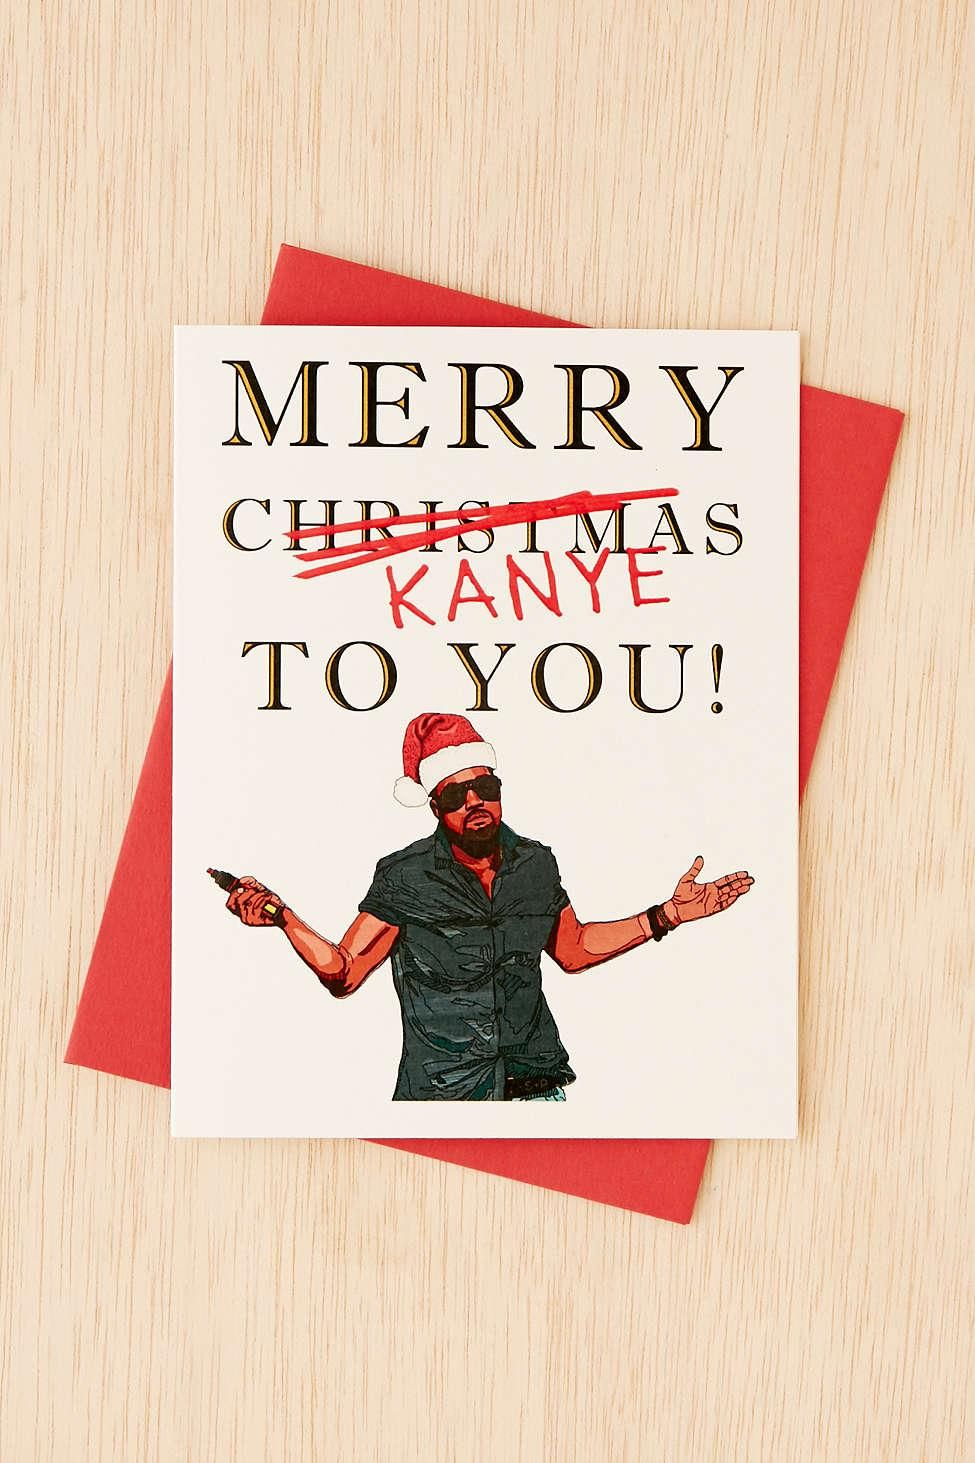 15 witty holiday cards that wont make you cringe holidays funny merry kanye funny holiday cards that wont make you cringe stylecaster m4hsunfo Gallery